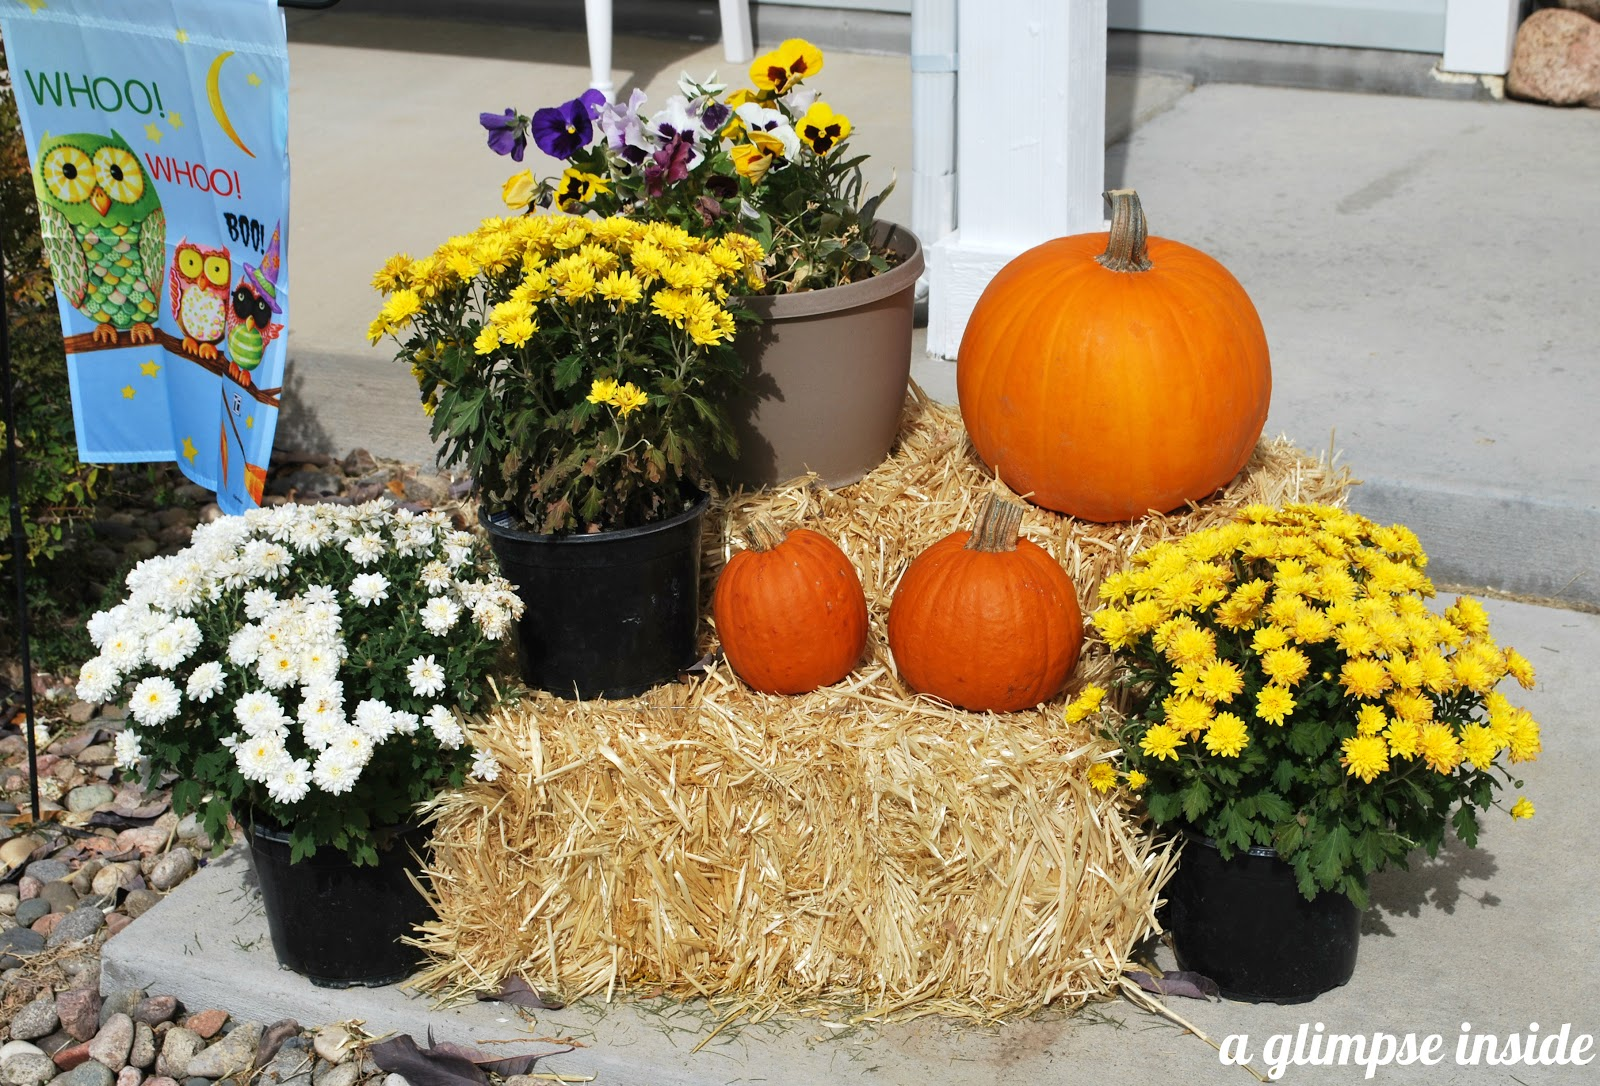 A Glimpse Inside Fall Fever My Fall Decor & Fall Hay Bale Decorating Ideas - Elitflat